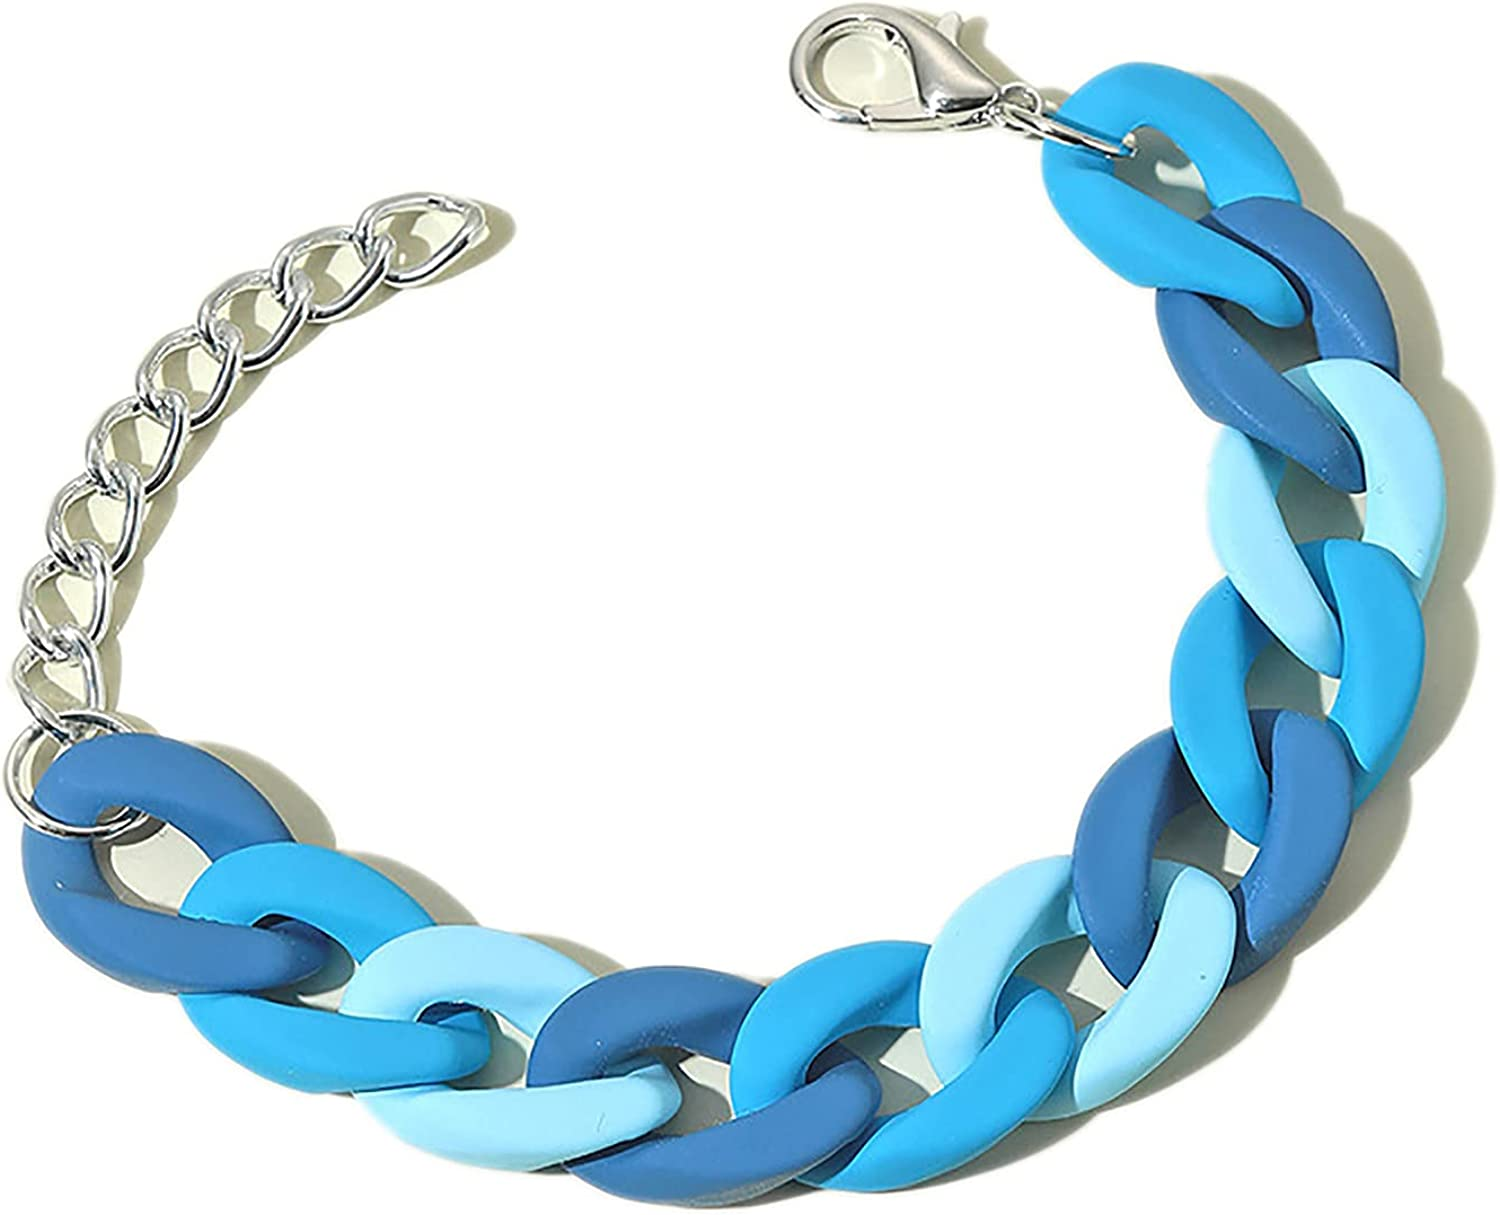 Colorful Resin Chunky Link Bracelet Exaggerated Thick Acrylic Adjustable Paperclip Oval Square Chain Rainbow Bracelet for Women Girl Summer Beach Geometric Jewelry-E blue